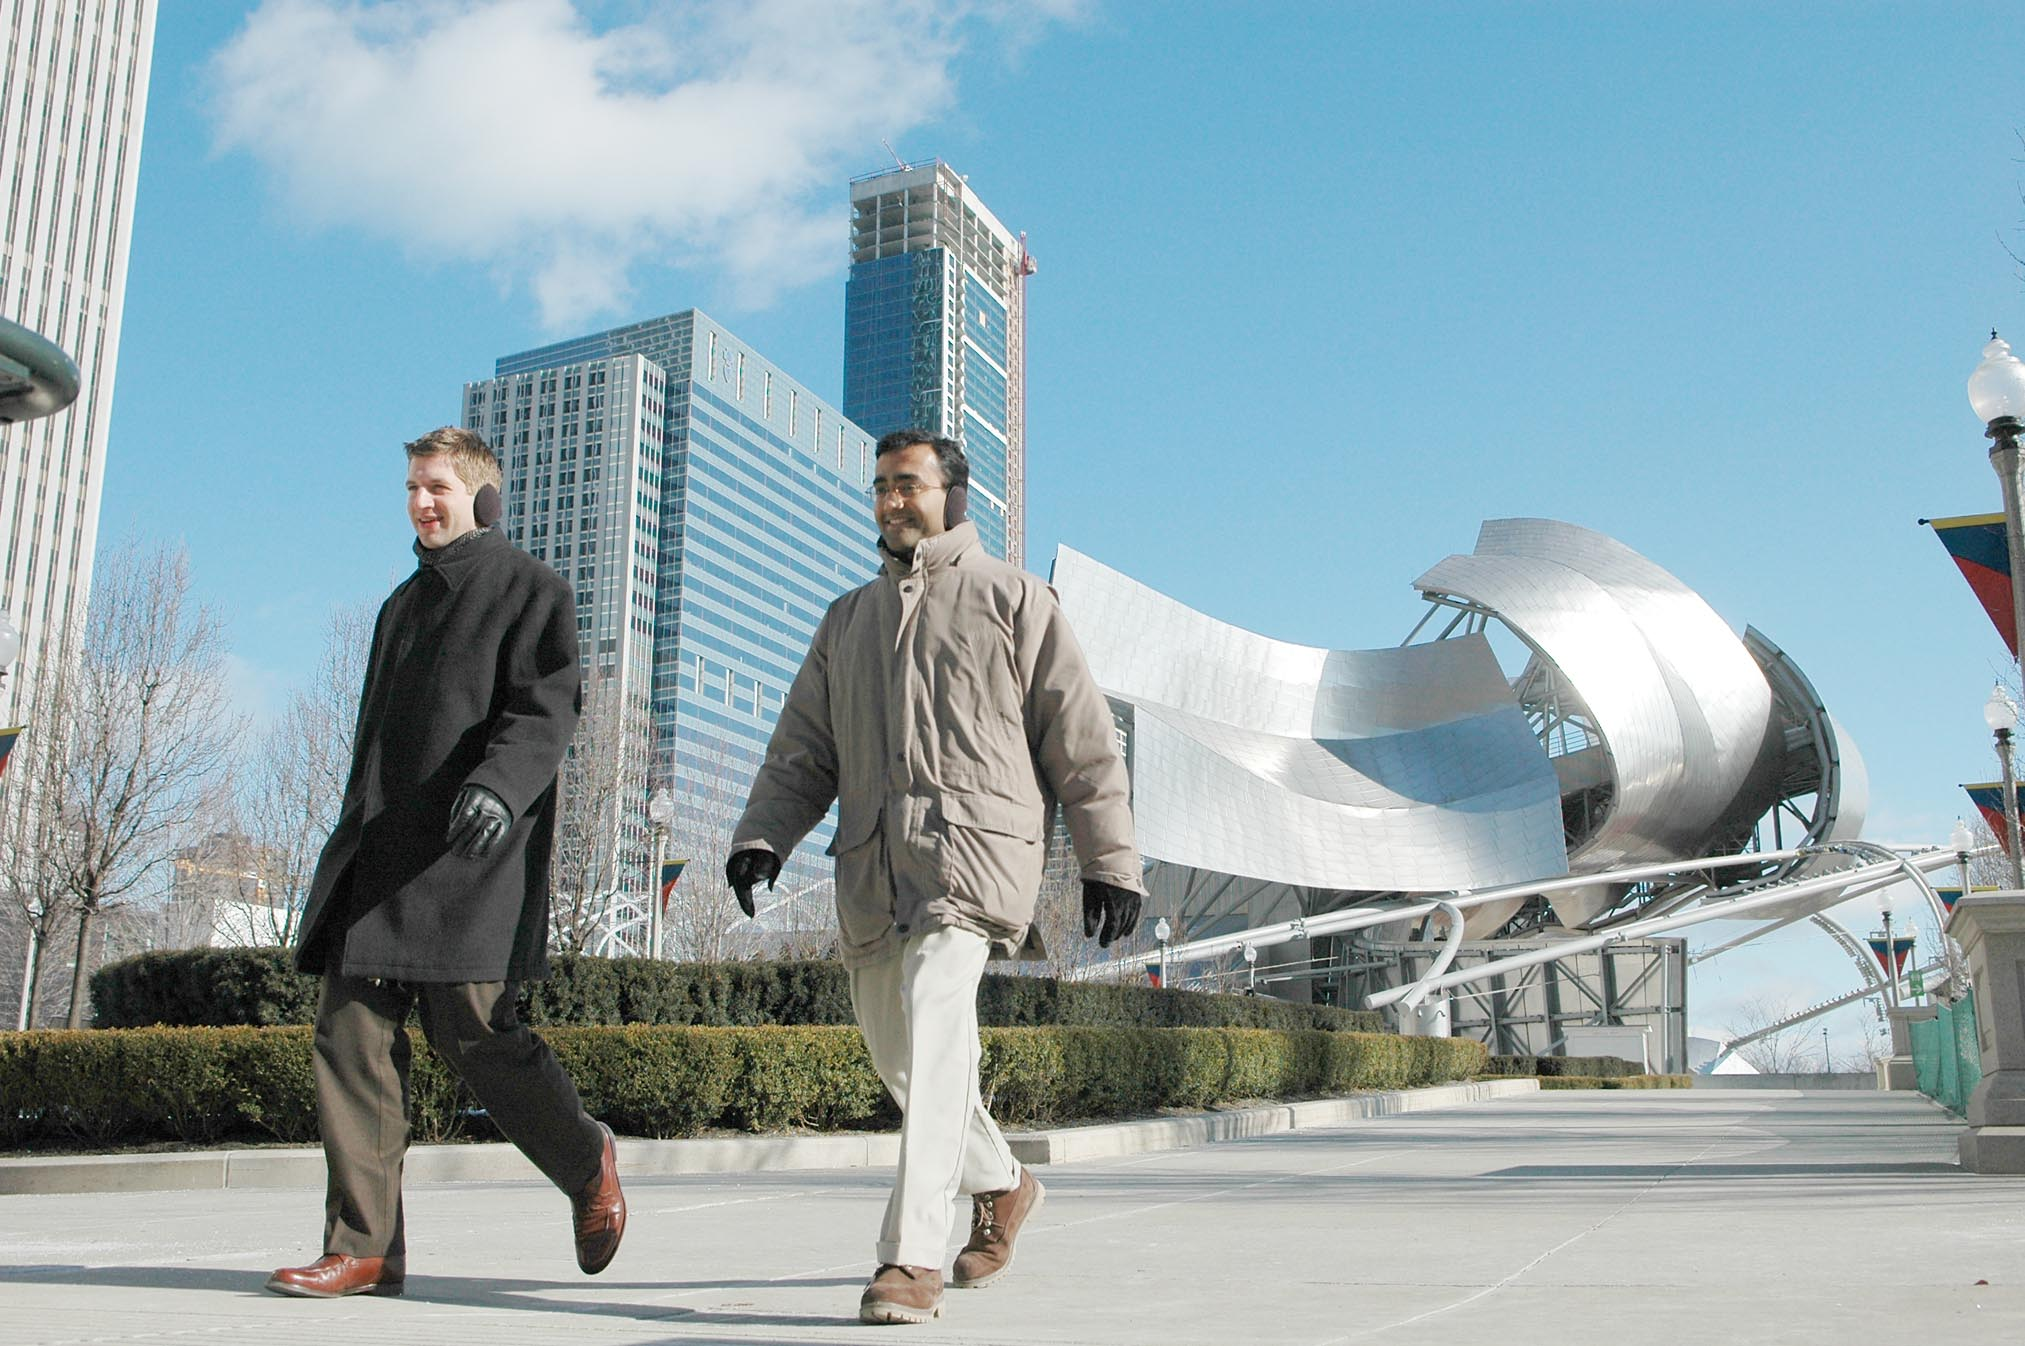 Pedestrians brave the cold in Millennium Park, which has spurred a residential building boom in the Loop.